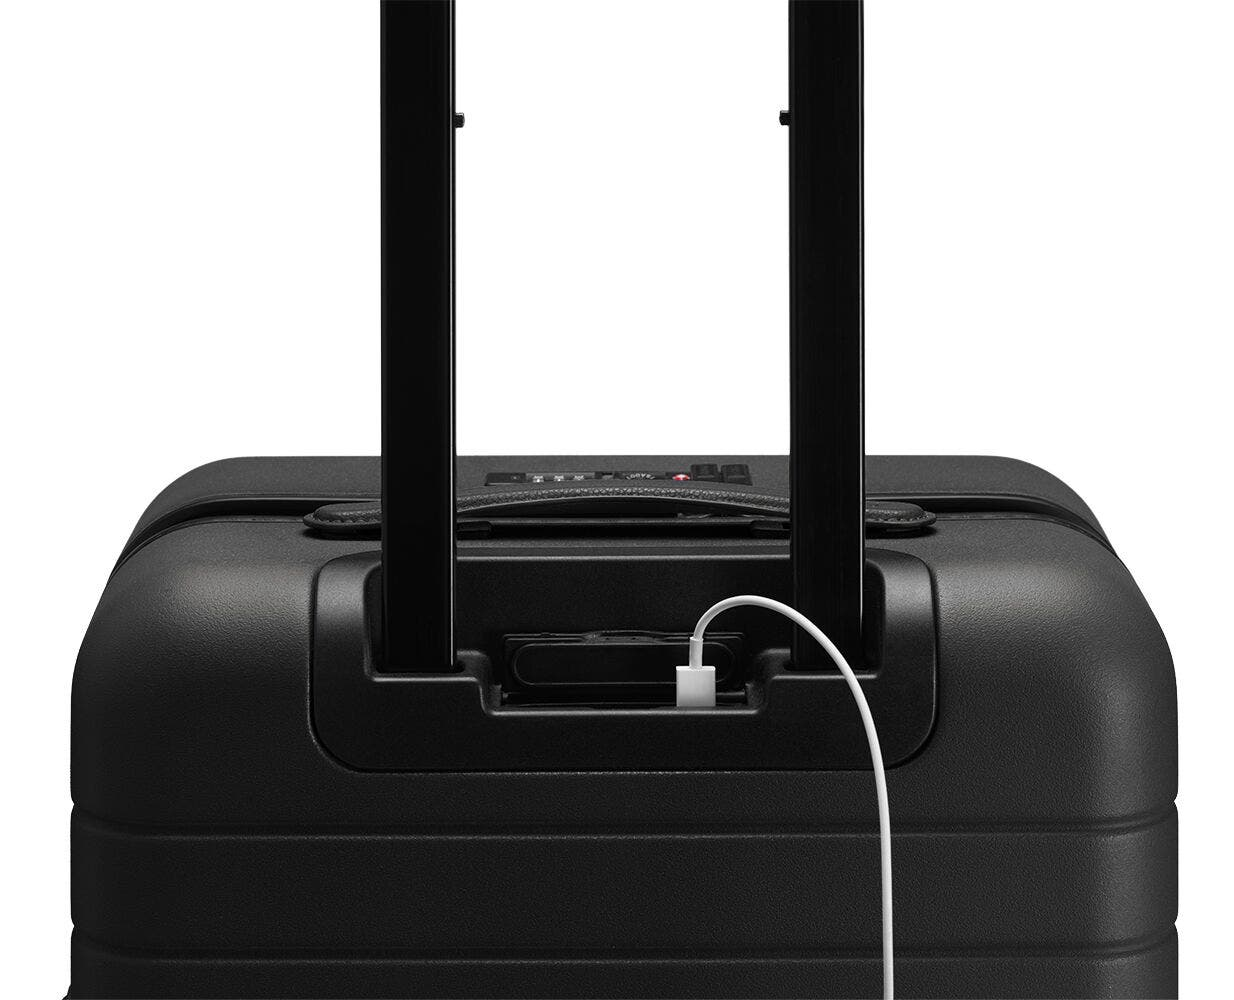 Video showing a finger pressing the battery to eject it from The Carry-On with Pocket in Black